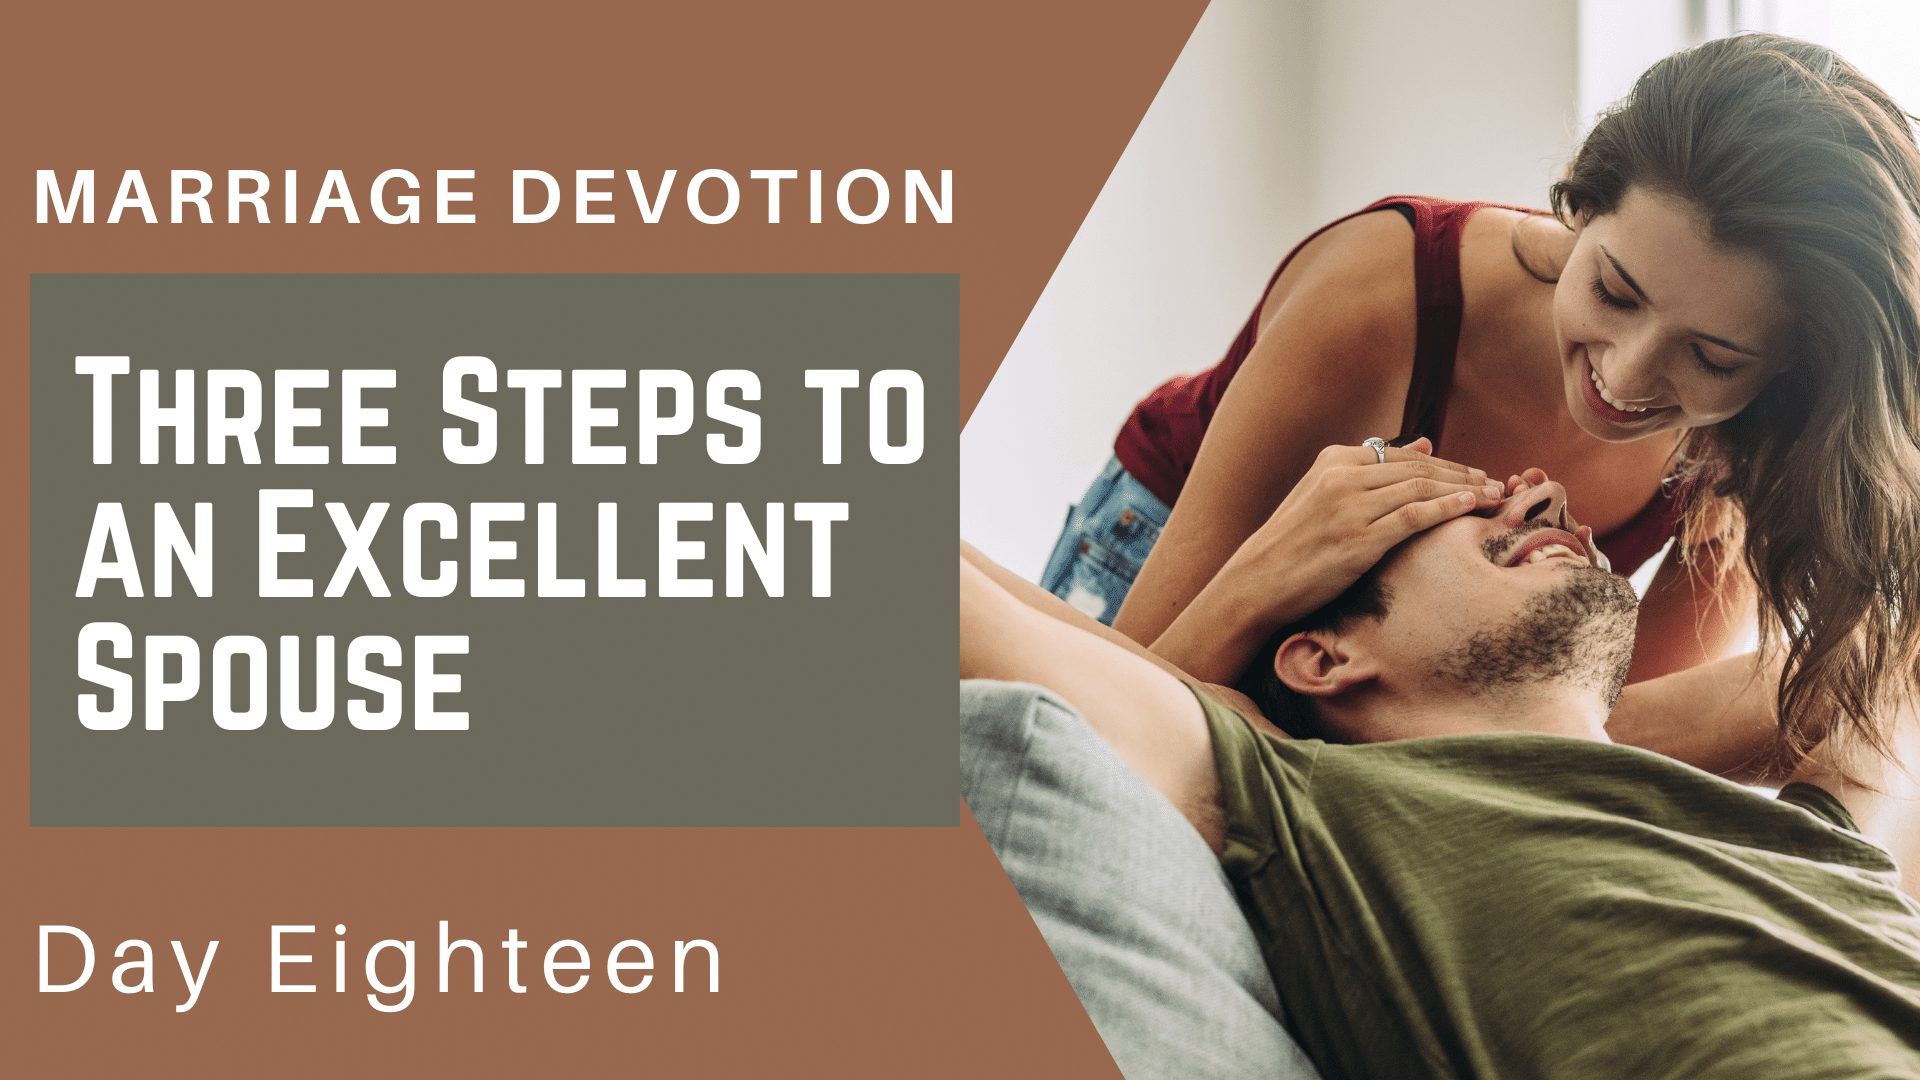 Marriage Devotion Day 18 – Three Steps to Be an Excellent Spouse